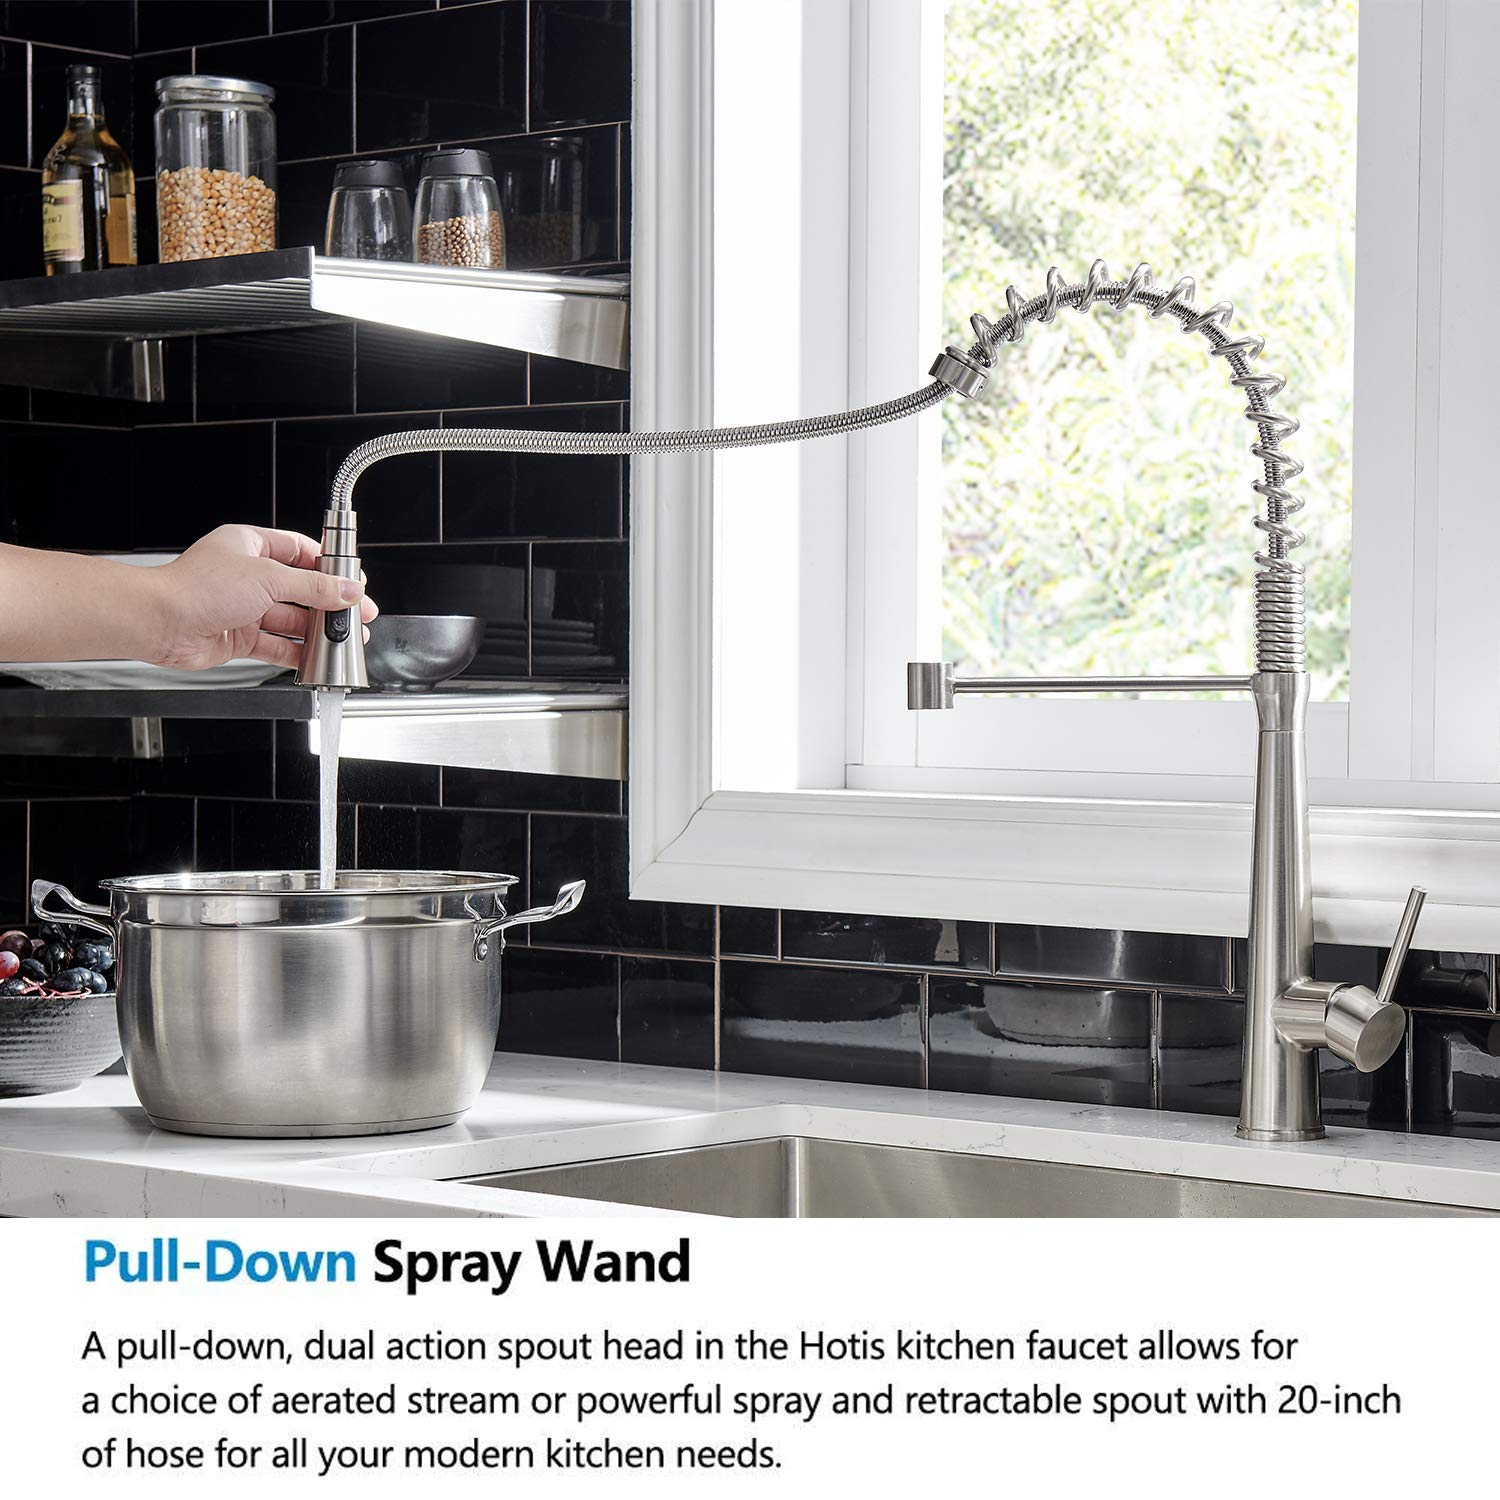 Hotis Commercial Stainless Steel Single Handle Pull Down Sprayer Spring Brushed Nickel Kitchen Faucet, Kitchen Sink Faucet by HOTIS HOME (Image #3)